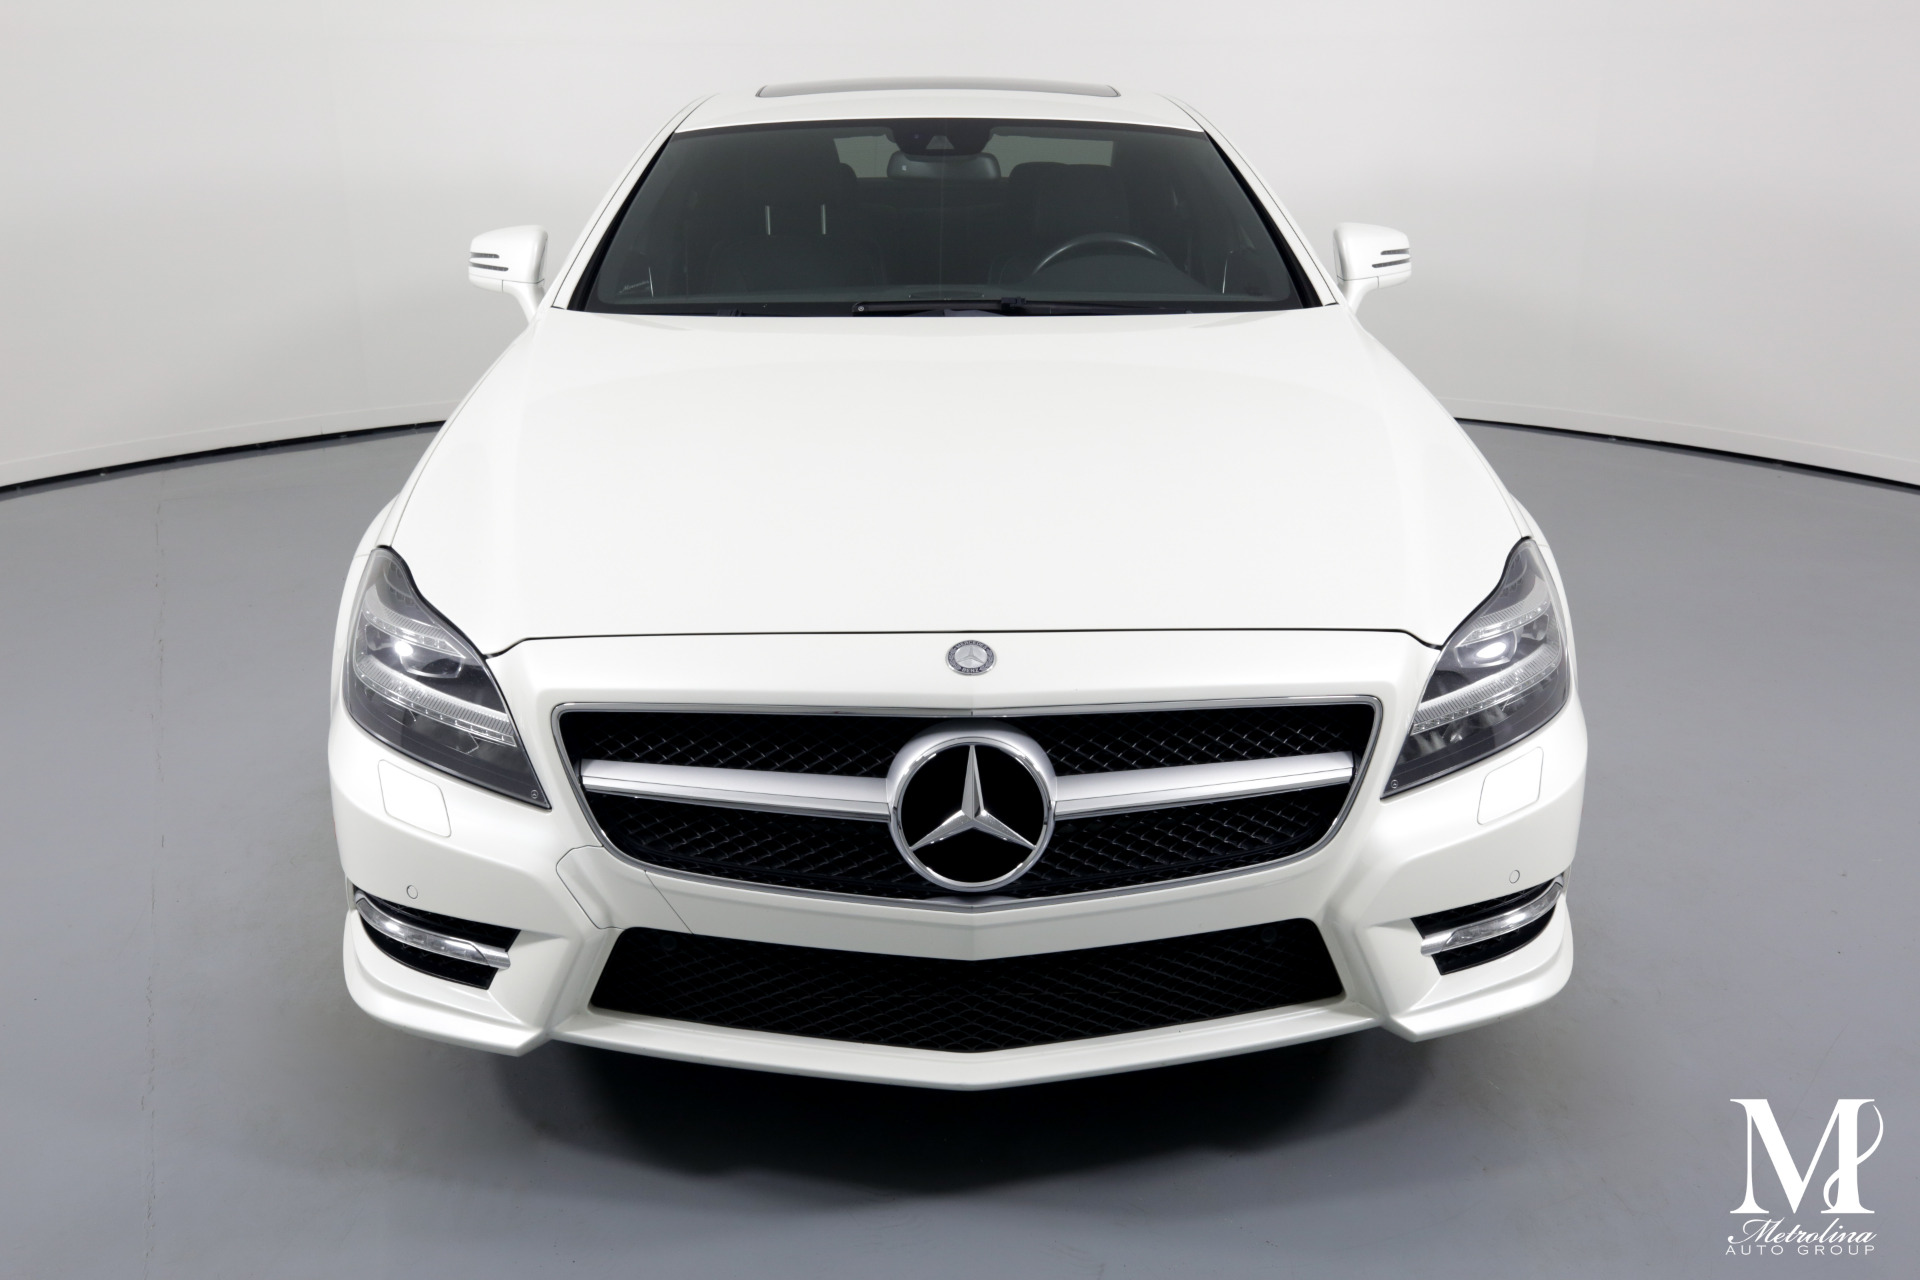 Used 2014 Mercedes-Benz CLS CLS 550 for sale Sold at Metrolina Auto Group in Charlotte NC 28217 - 3